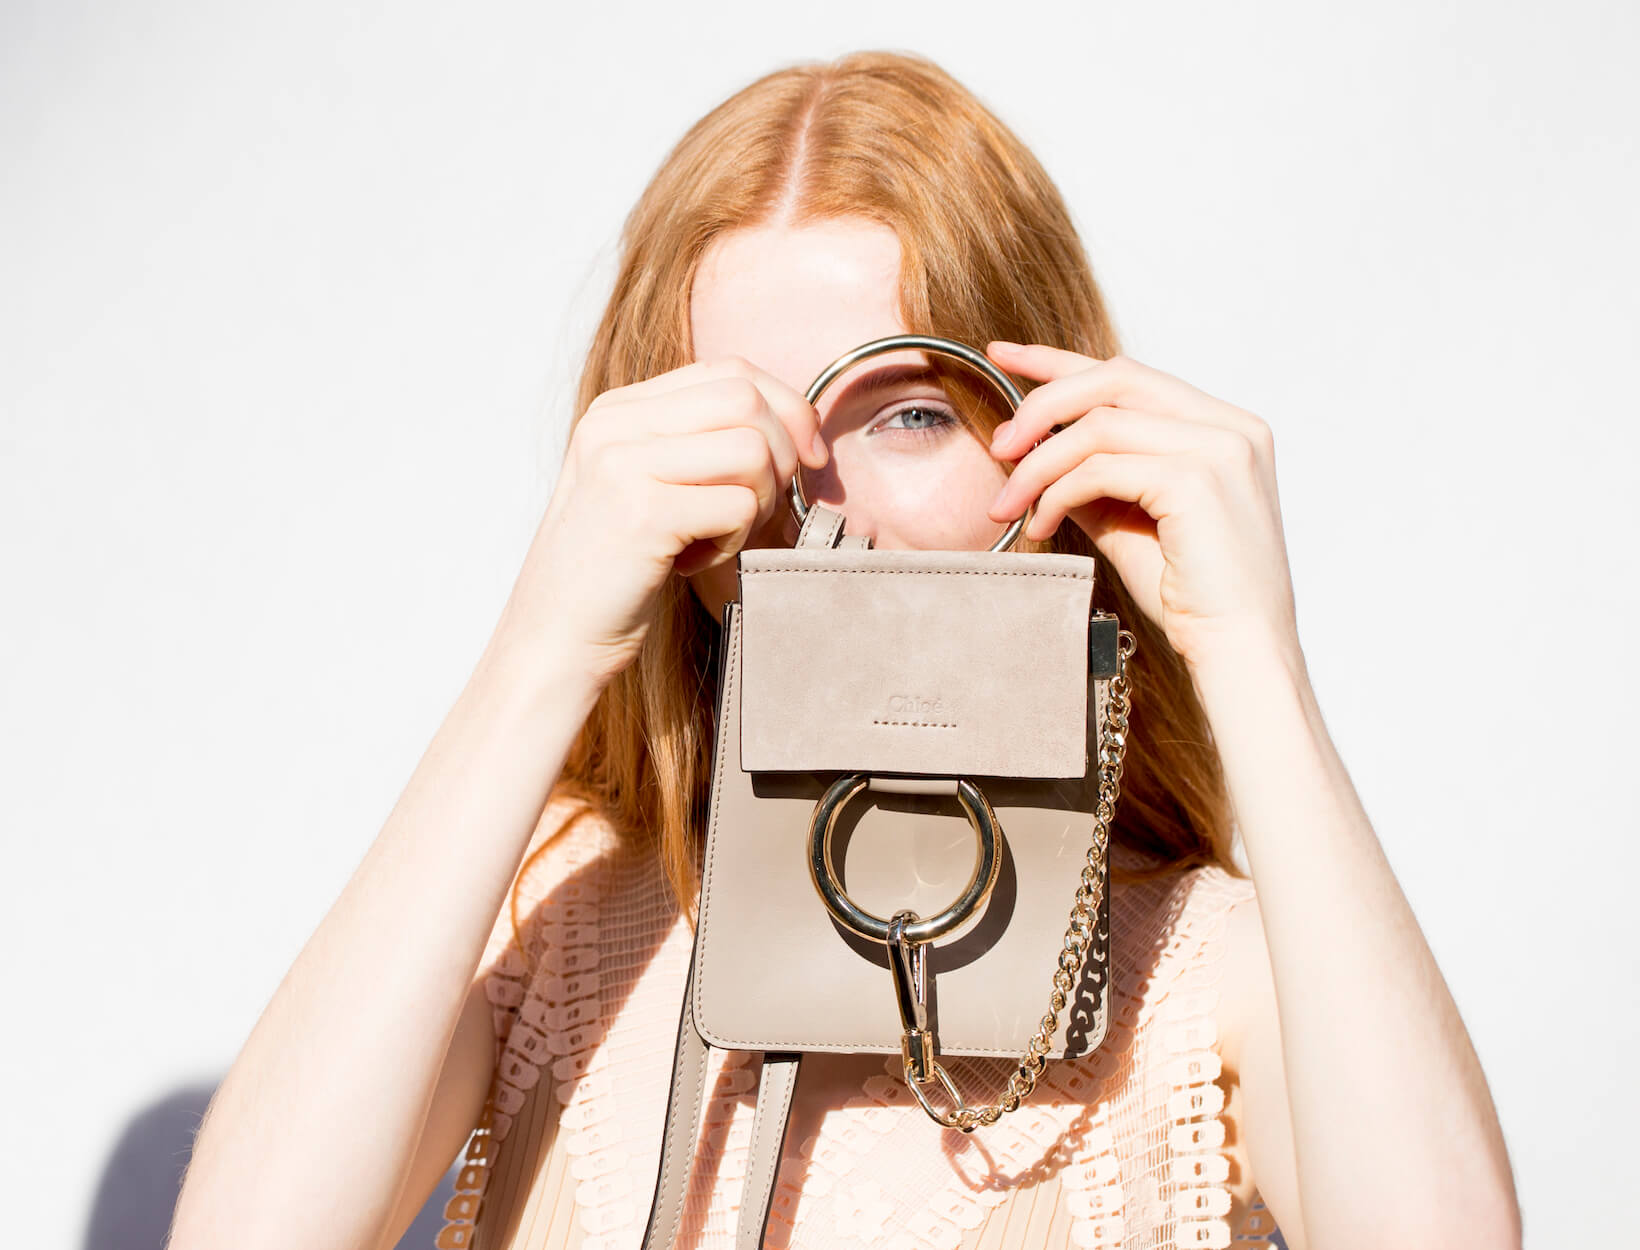 Next-Level Accessories (and How to Wear Them)